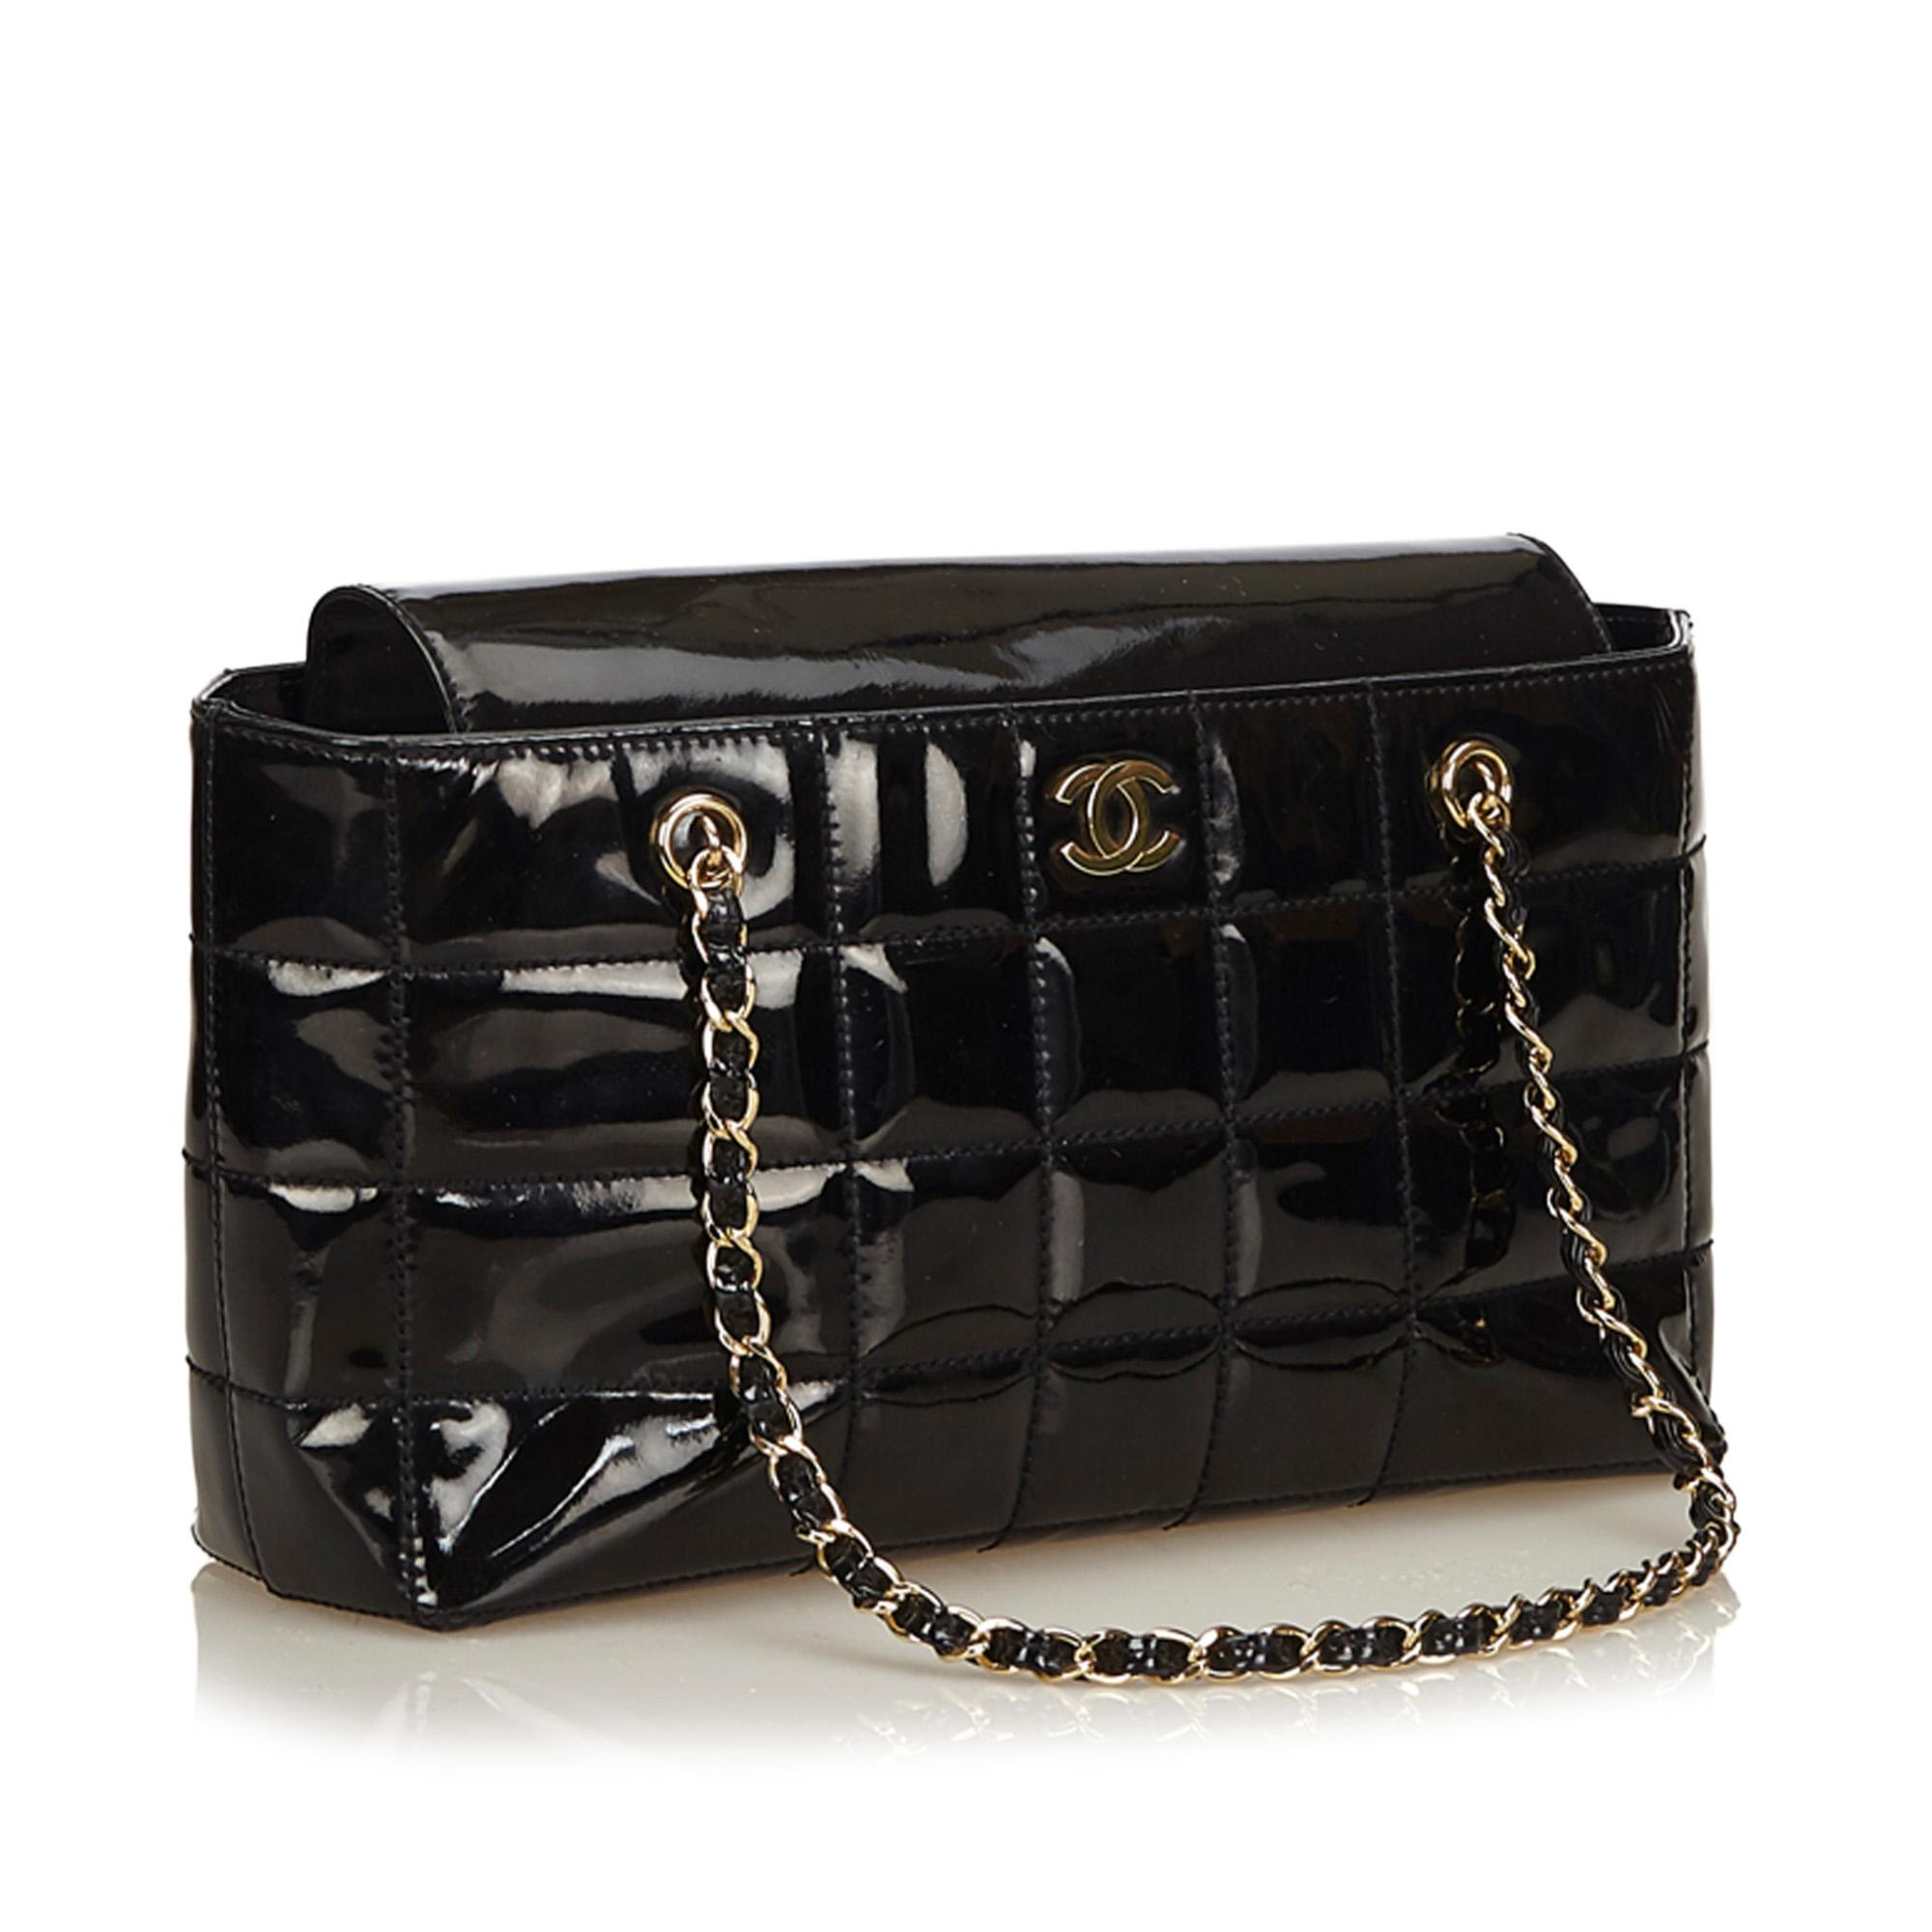 4b7c0e2ec5d00c Chanel - Black Choco Bar Patent Leather Shoulder Bag - Lyst. View fullscreen